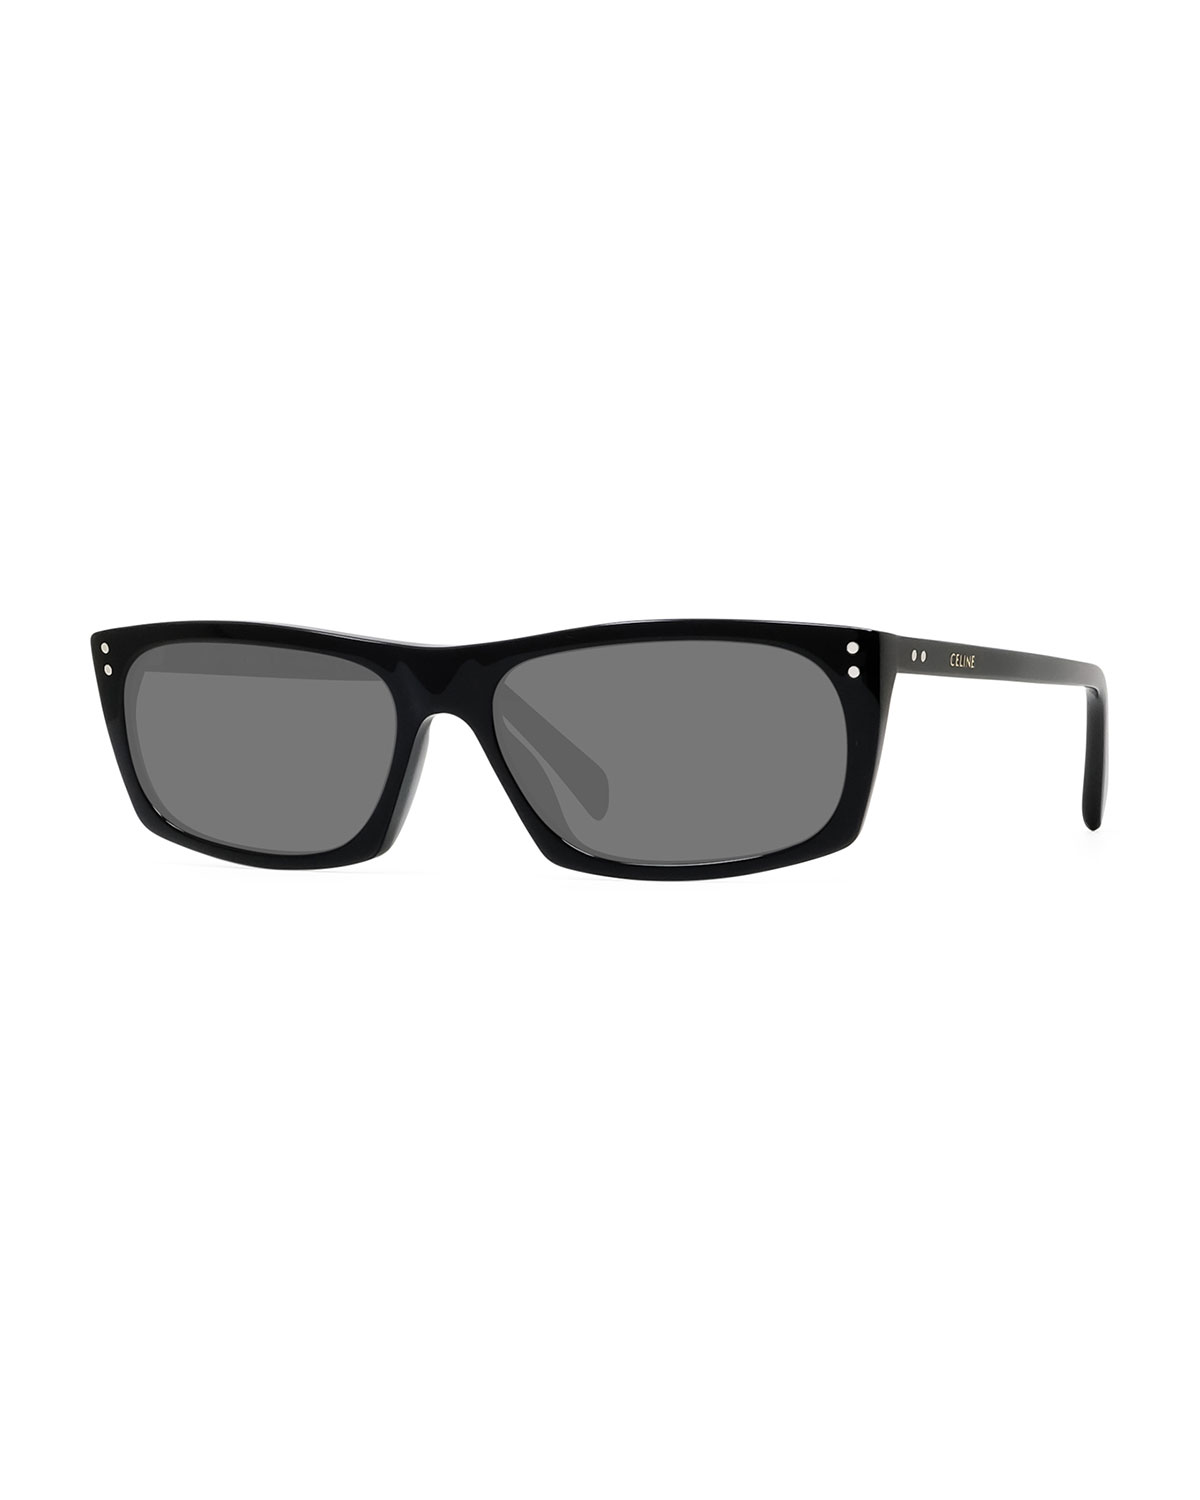 Celine Sunglasses MEN'S RECTANGLE STUDDED ACETATE SUNGLASSES